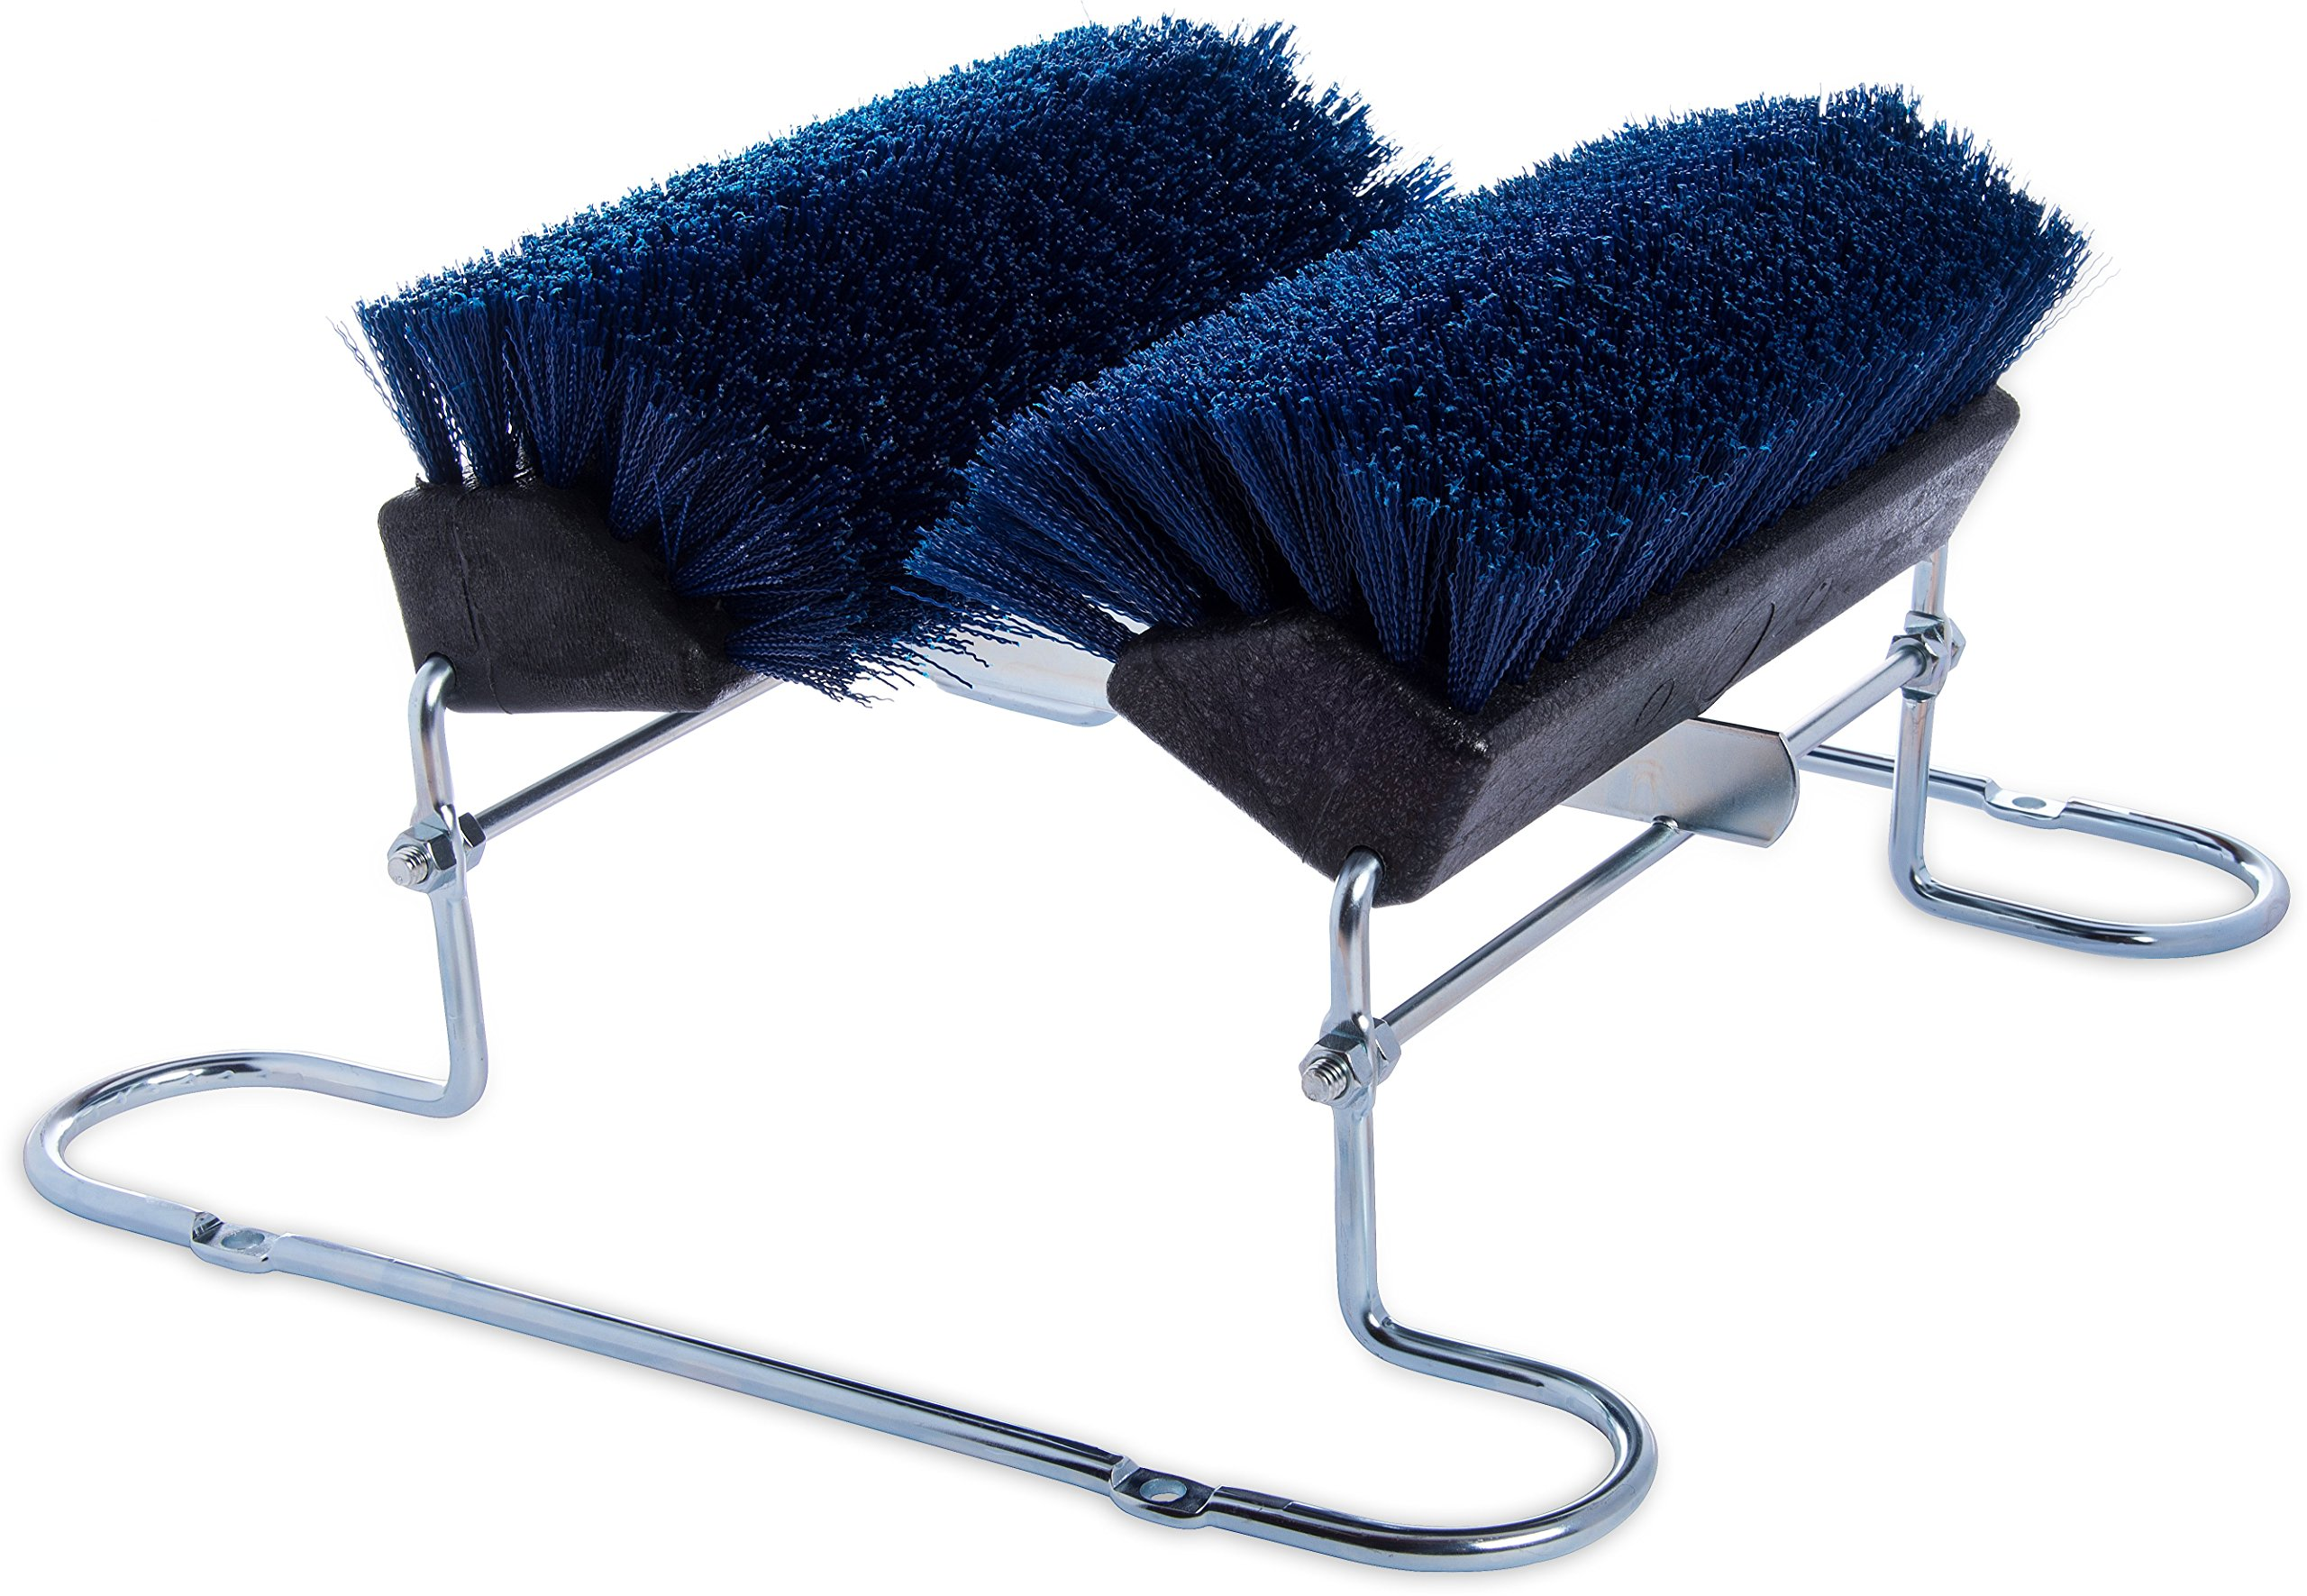 Carlisle 4042414 Commercial Boot 'N Shoe Brush Scraper with Chrome Plated Steel Frame, Blue by Carlisle (Image #1)